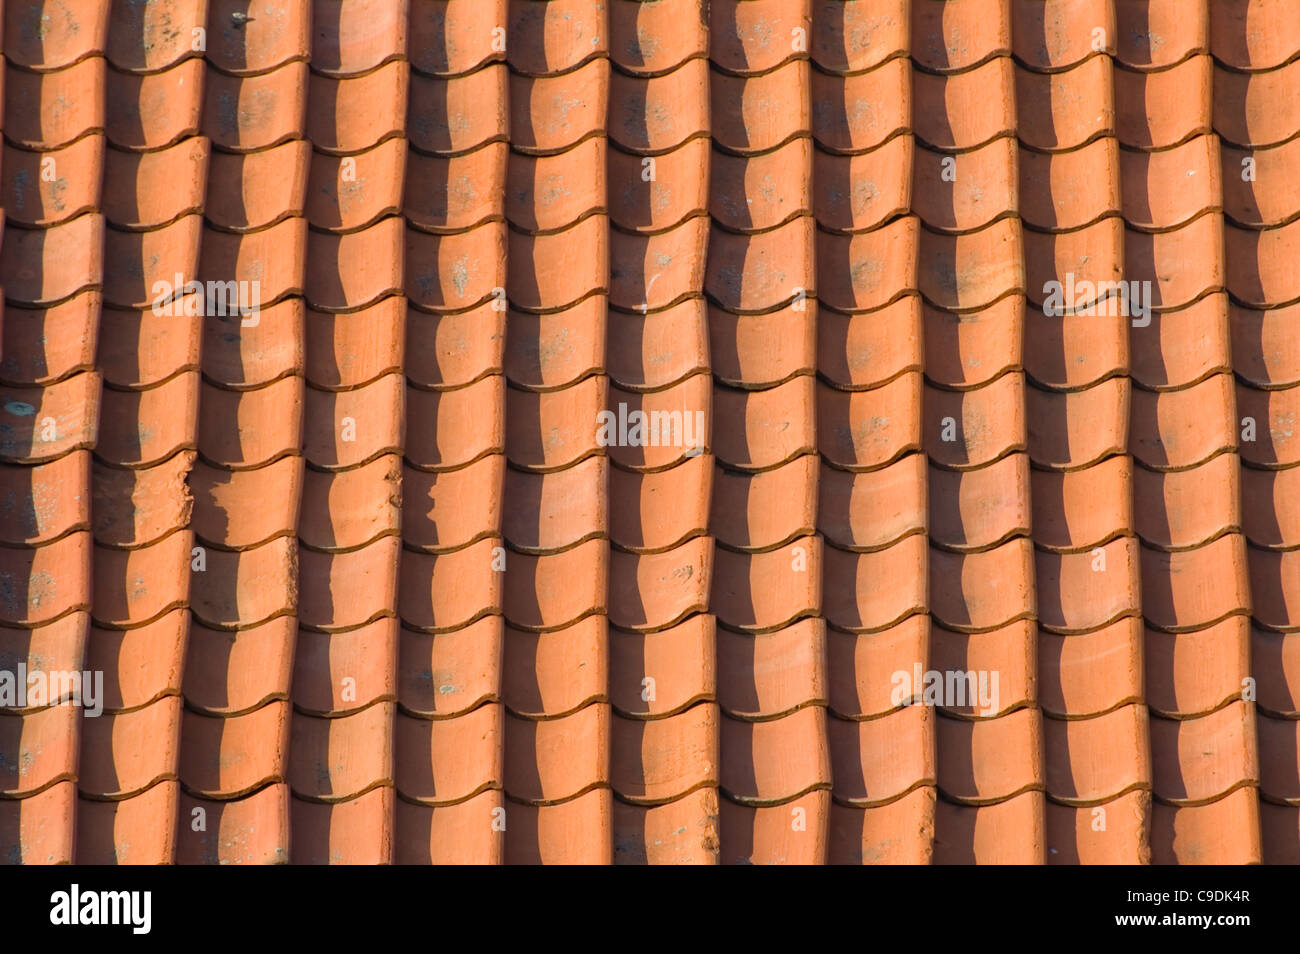 Old, red roof tiles - Stock Image